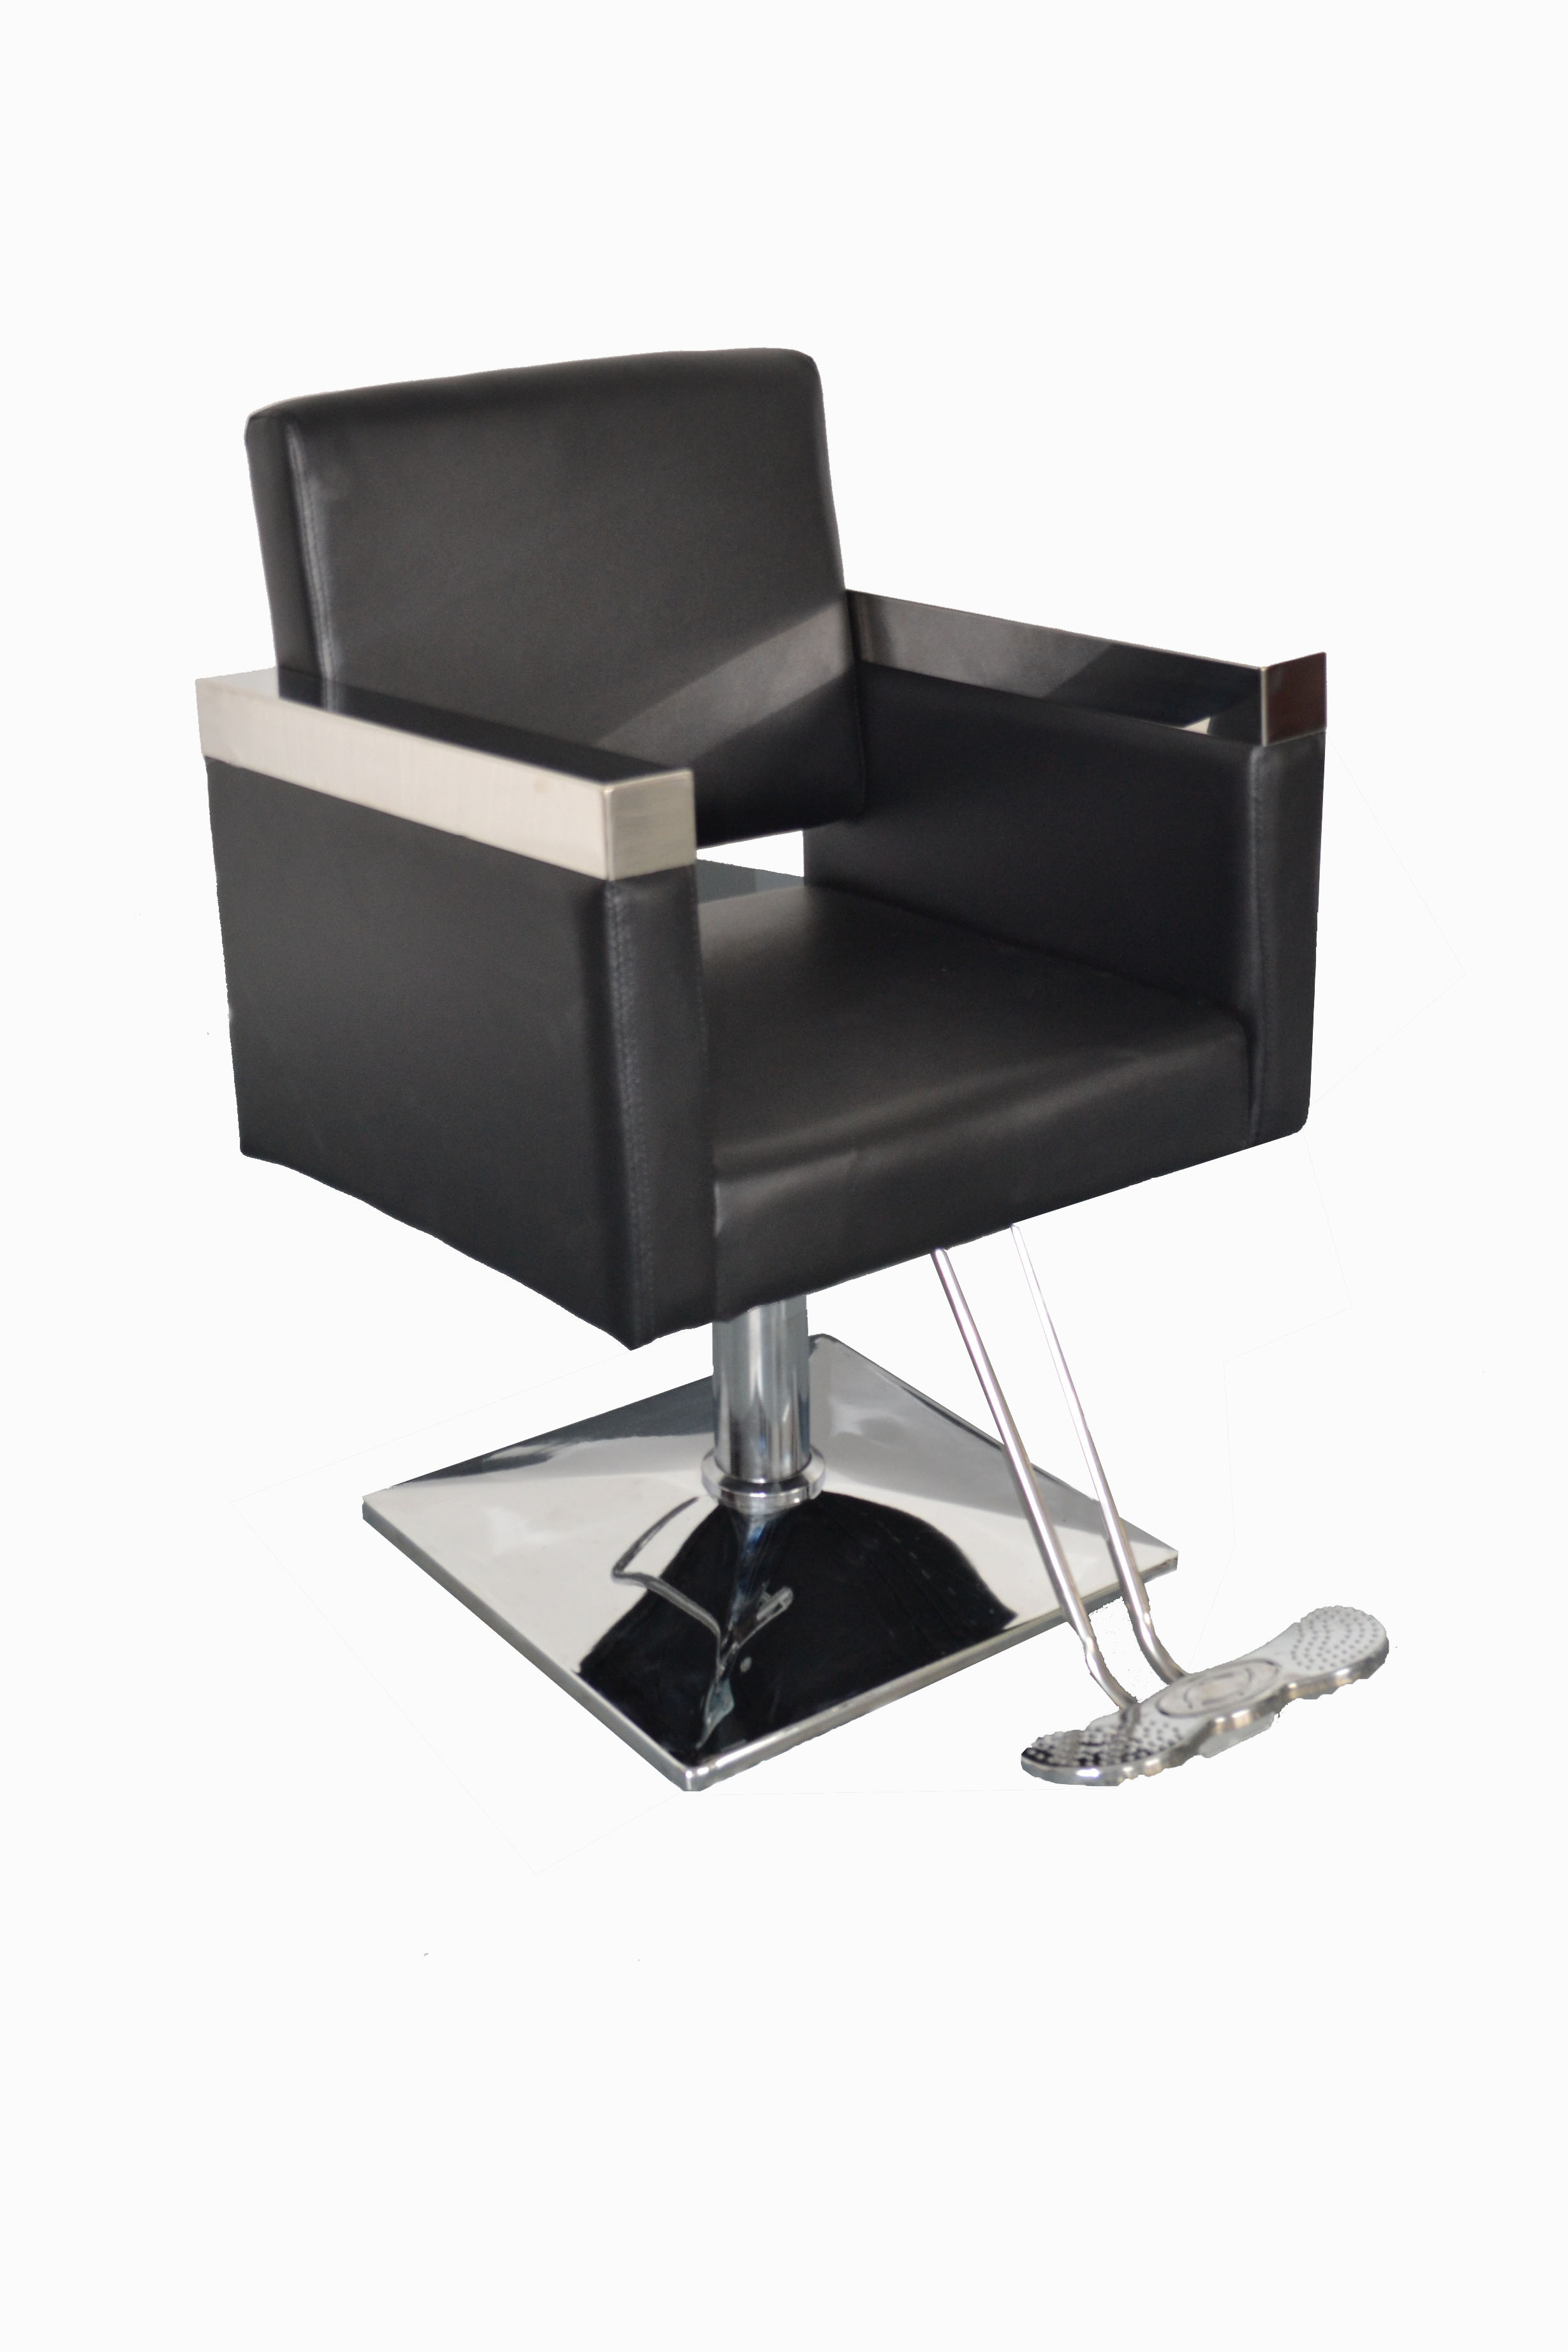 barber chair brands patio chairs lowes barberpub hydraulic salon styling beauty spa